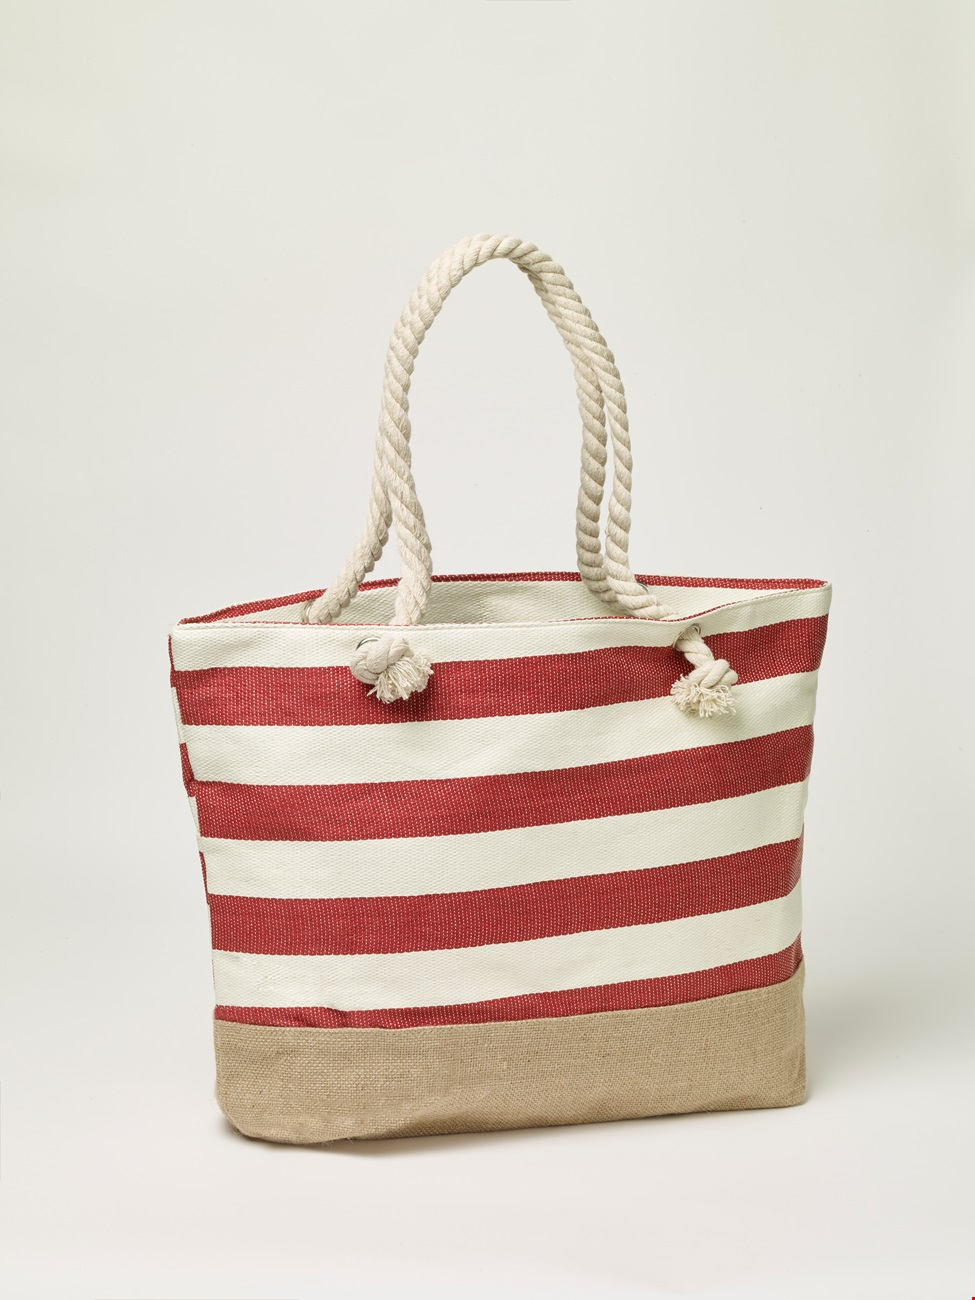 New England Beach Bag - large red stripe